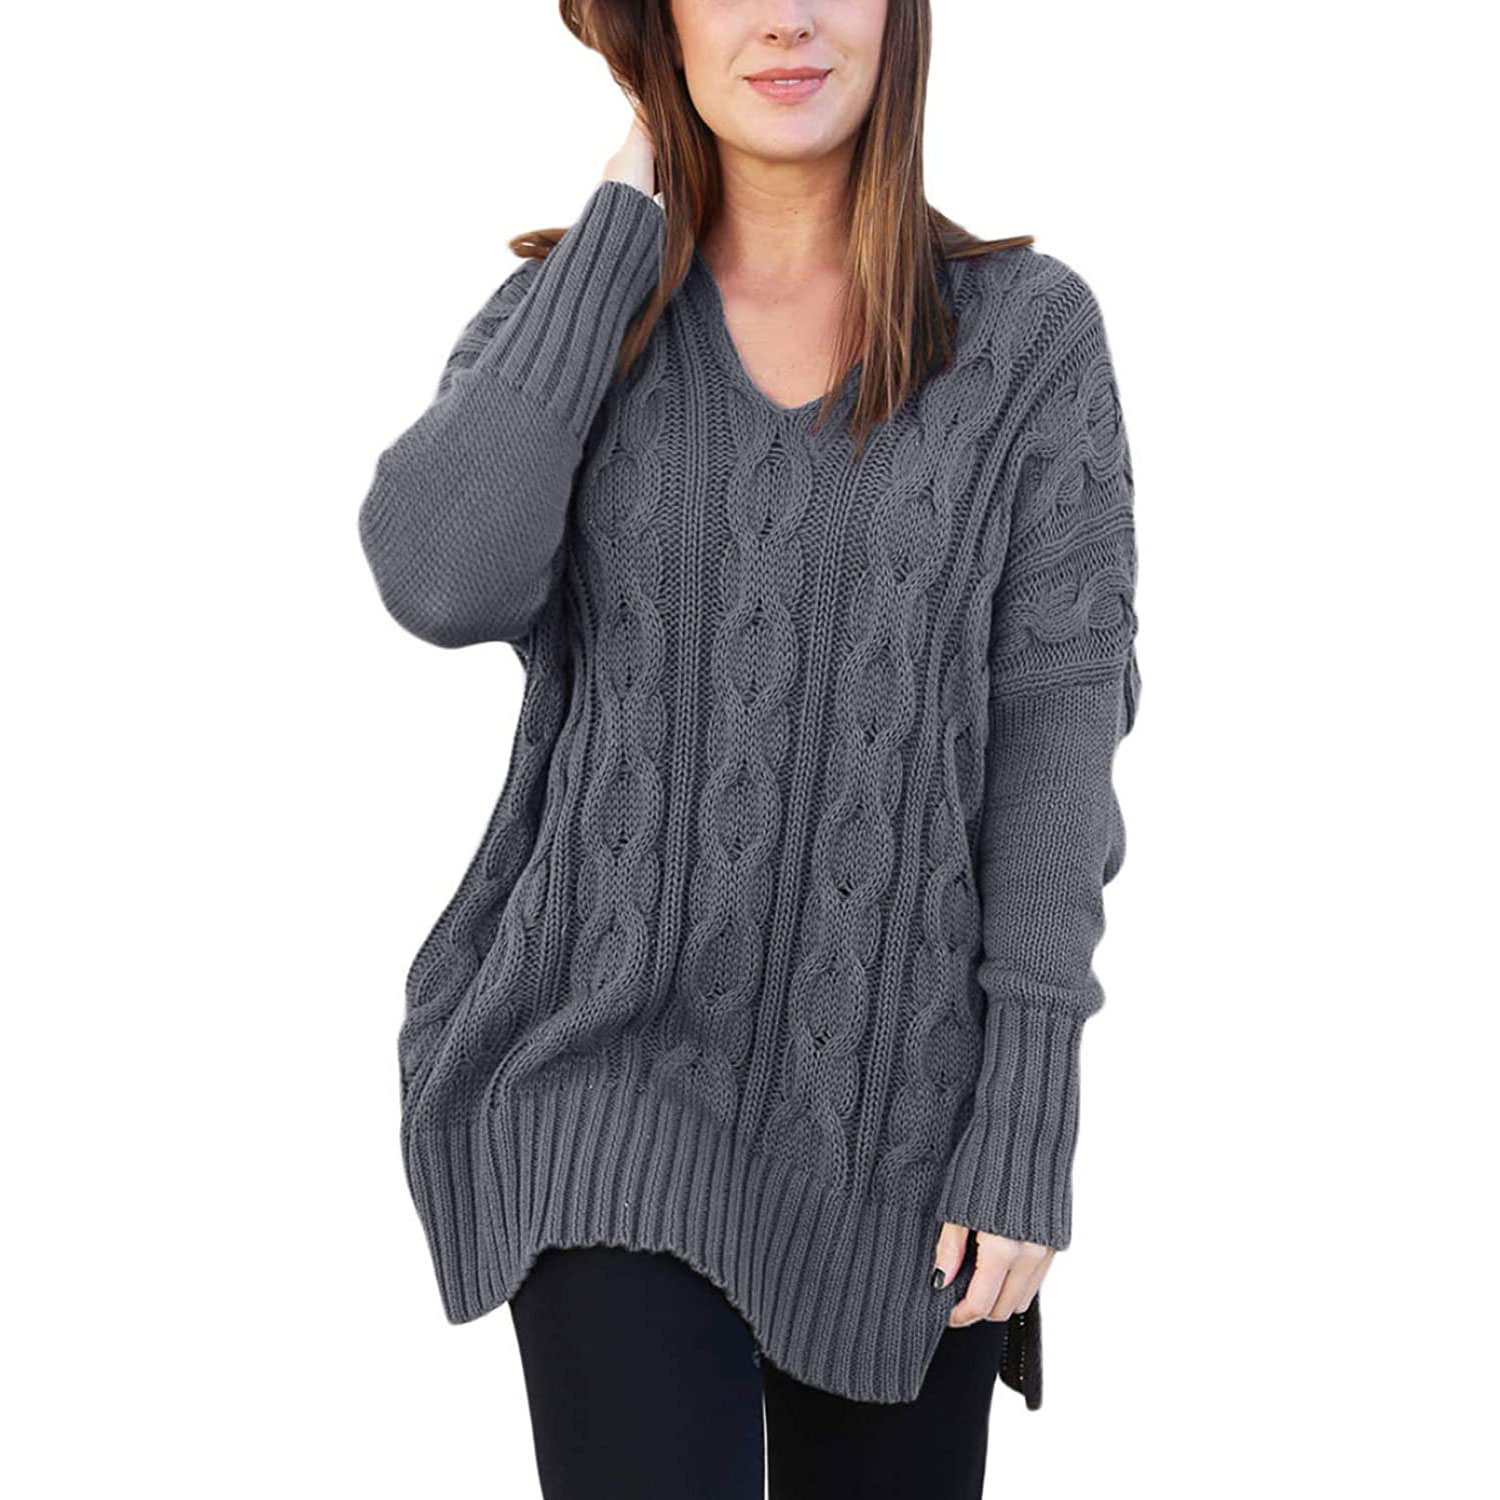 sidefeel women casual v-neck loose fit knit sweater pullover top, gray